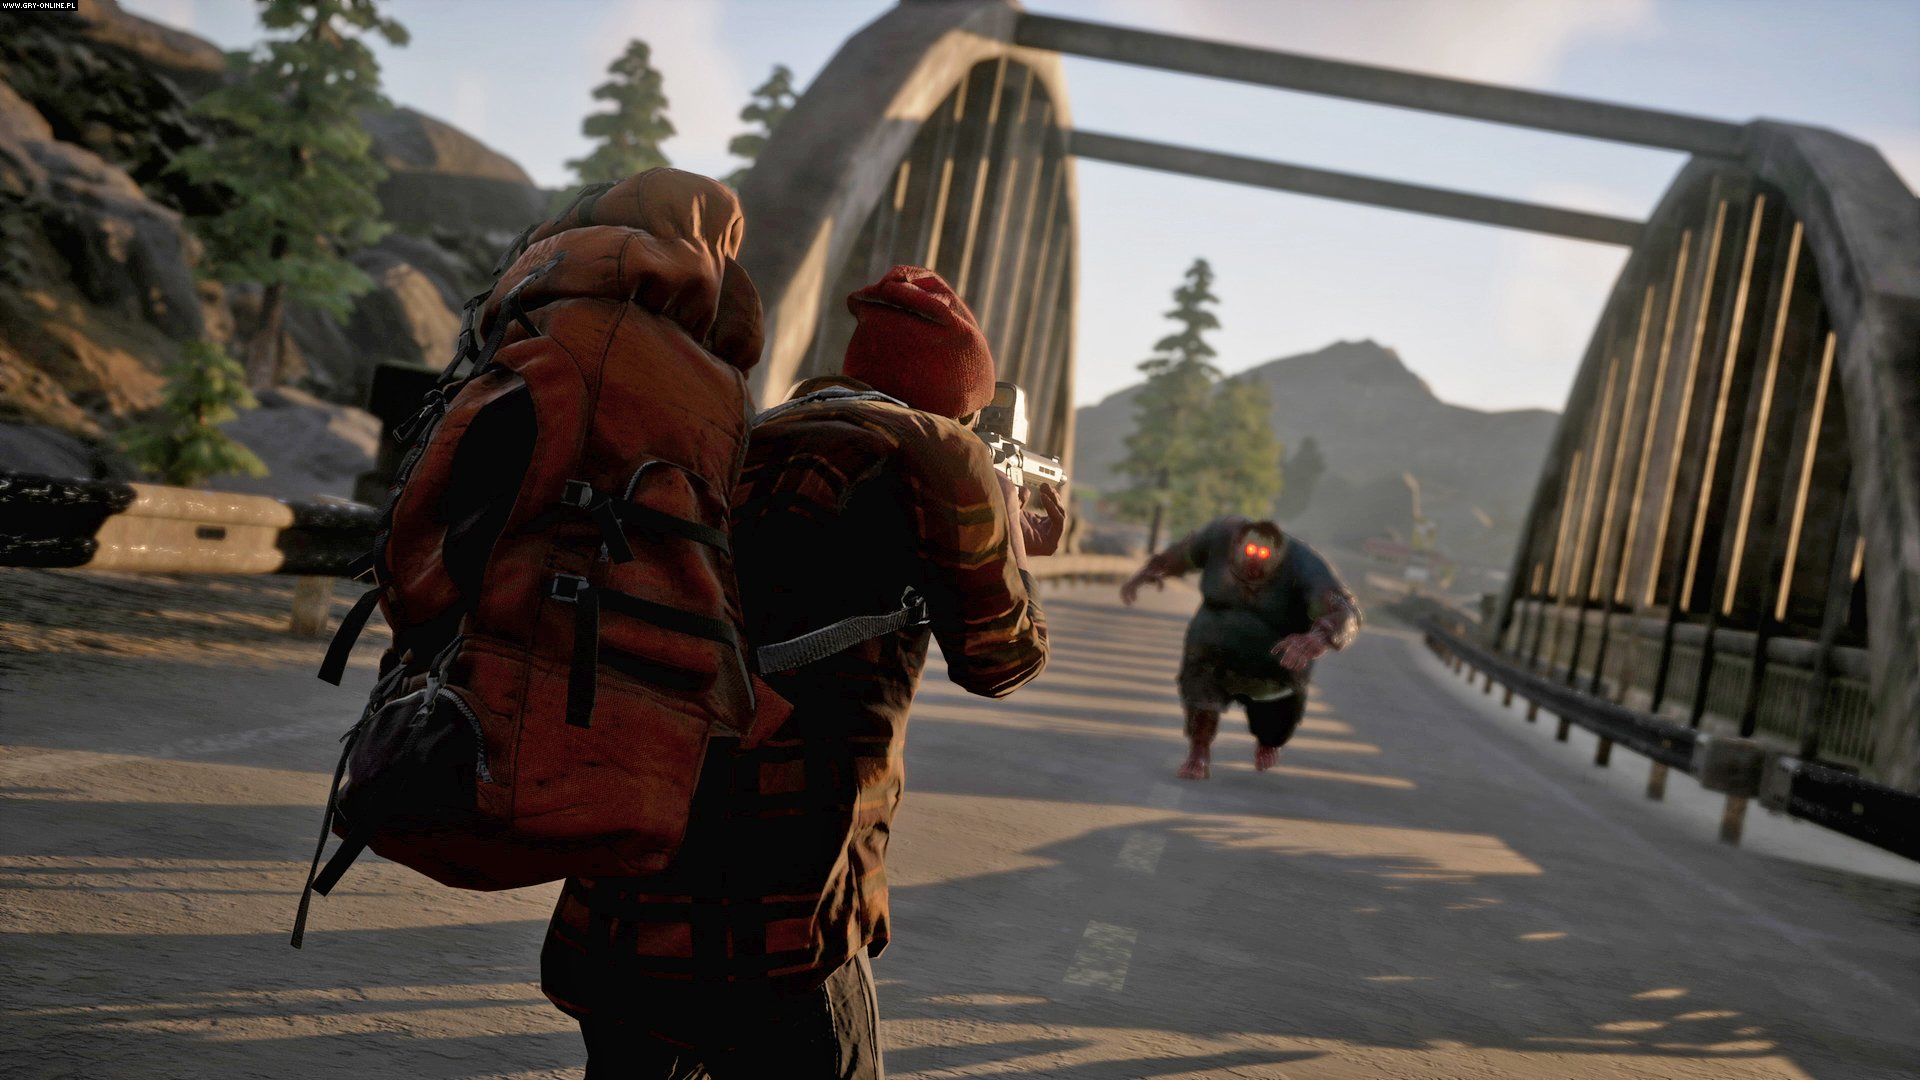 State of Decay 2 PC, XONE Games Image 5/13, Undead Labs, Microsoft Studios